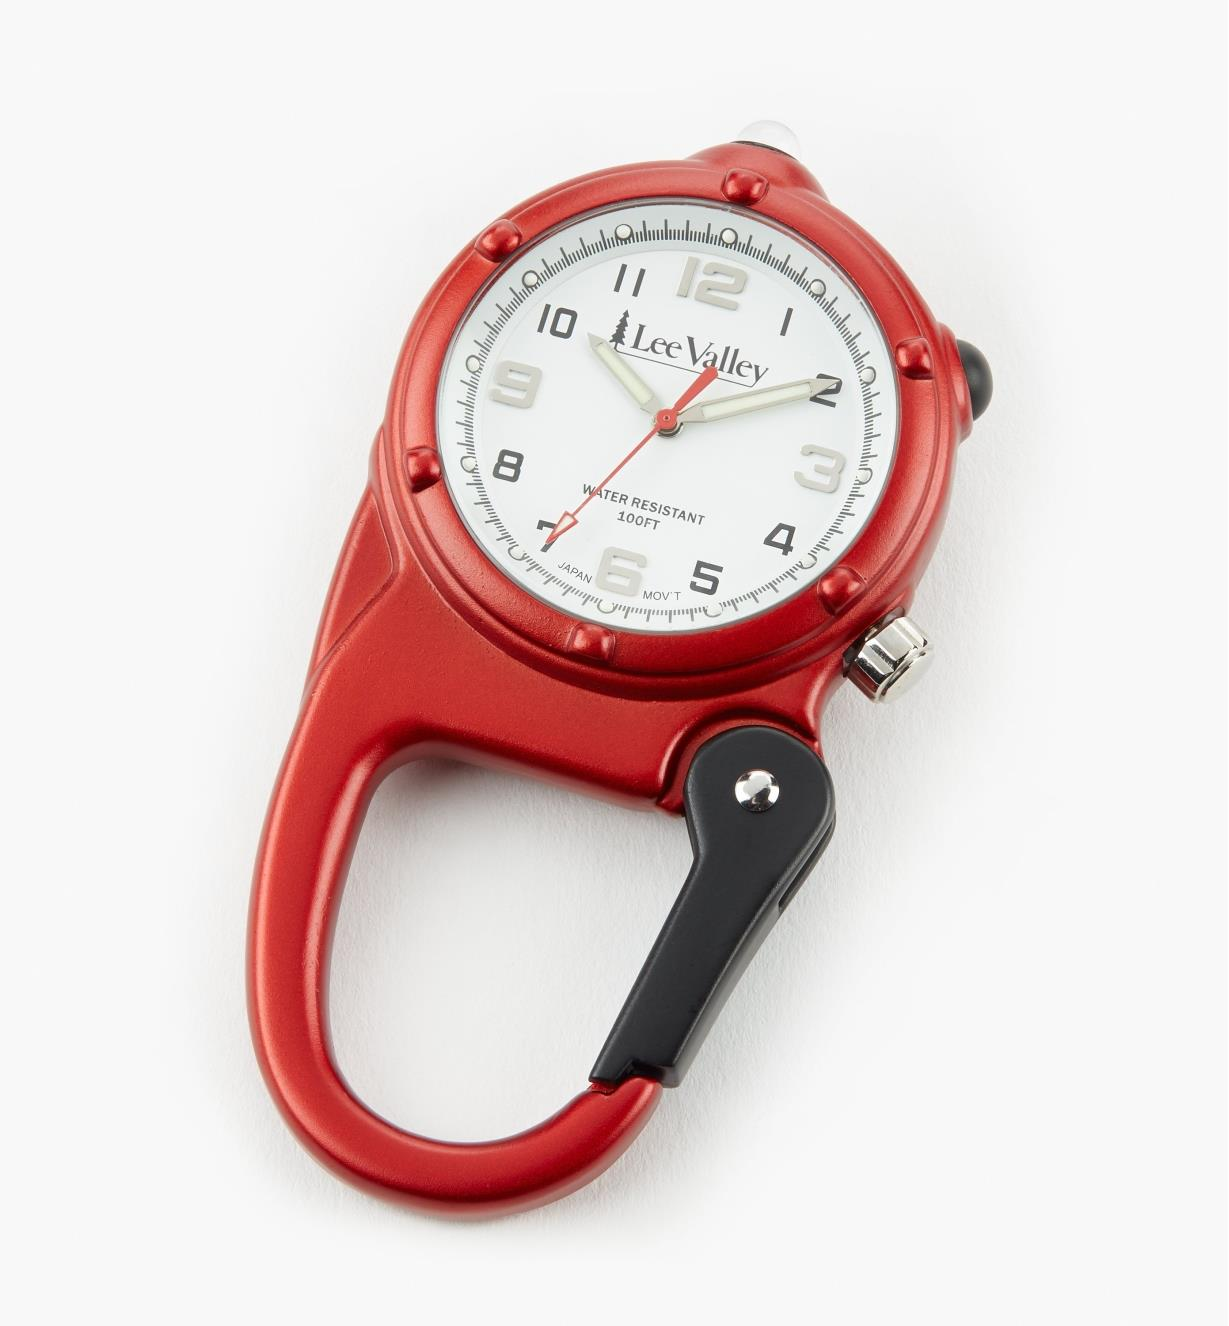 45K1889 - Lee Valley Carabiner Watch